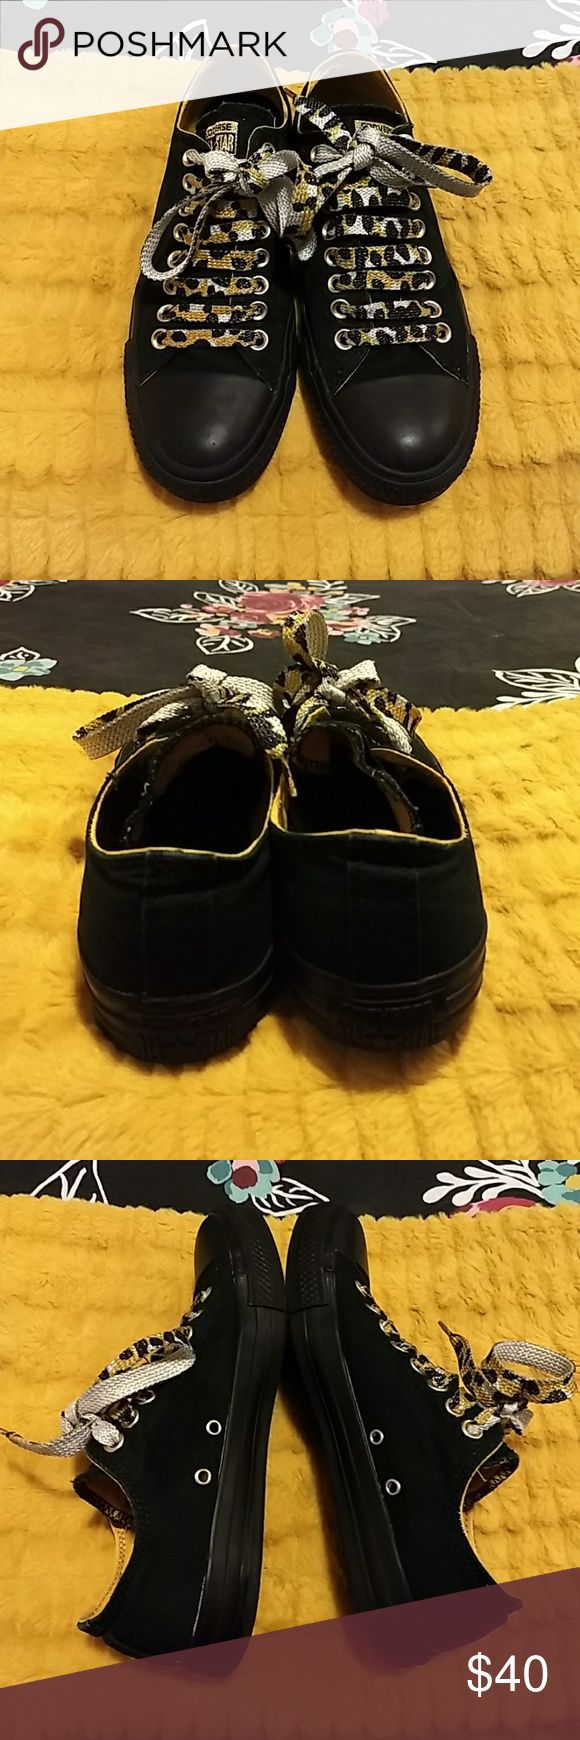 Converse Shoes Women's Converse shoes, black on black with gold accents.  Size 9.  I wore these a lot, still in good condition. Converse Shoes Sneakers